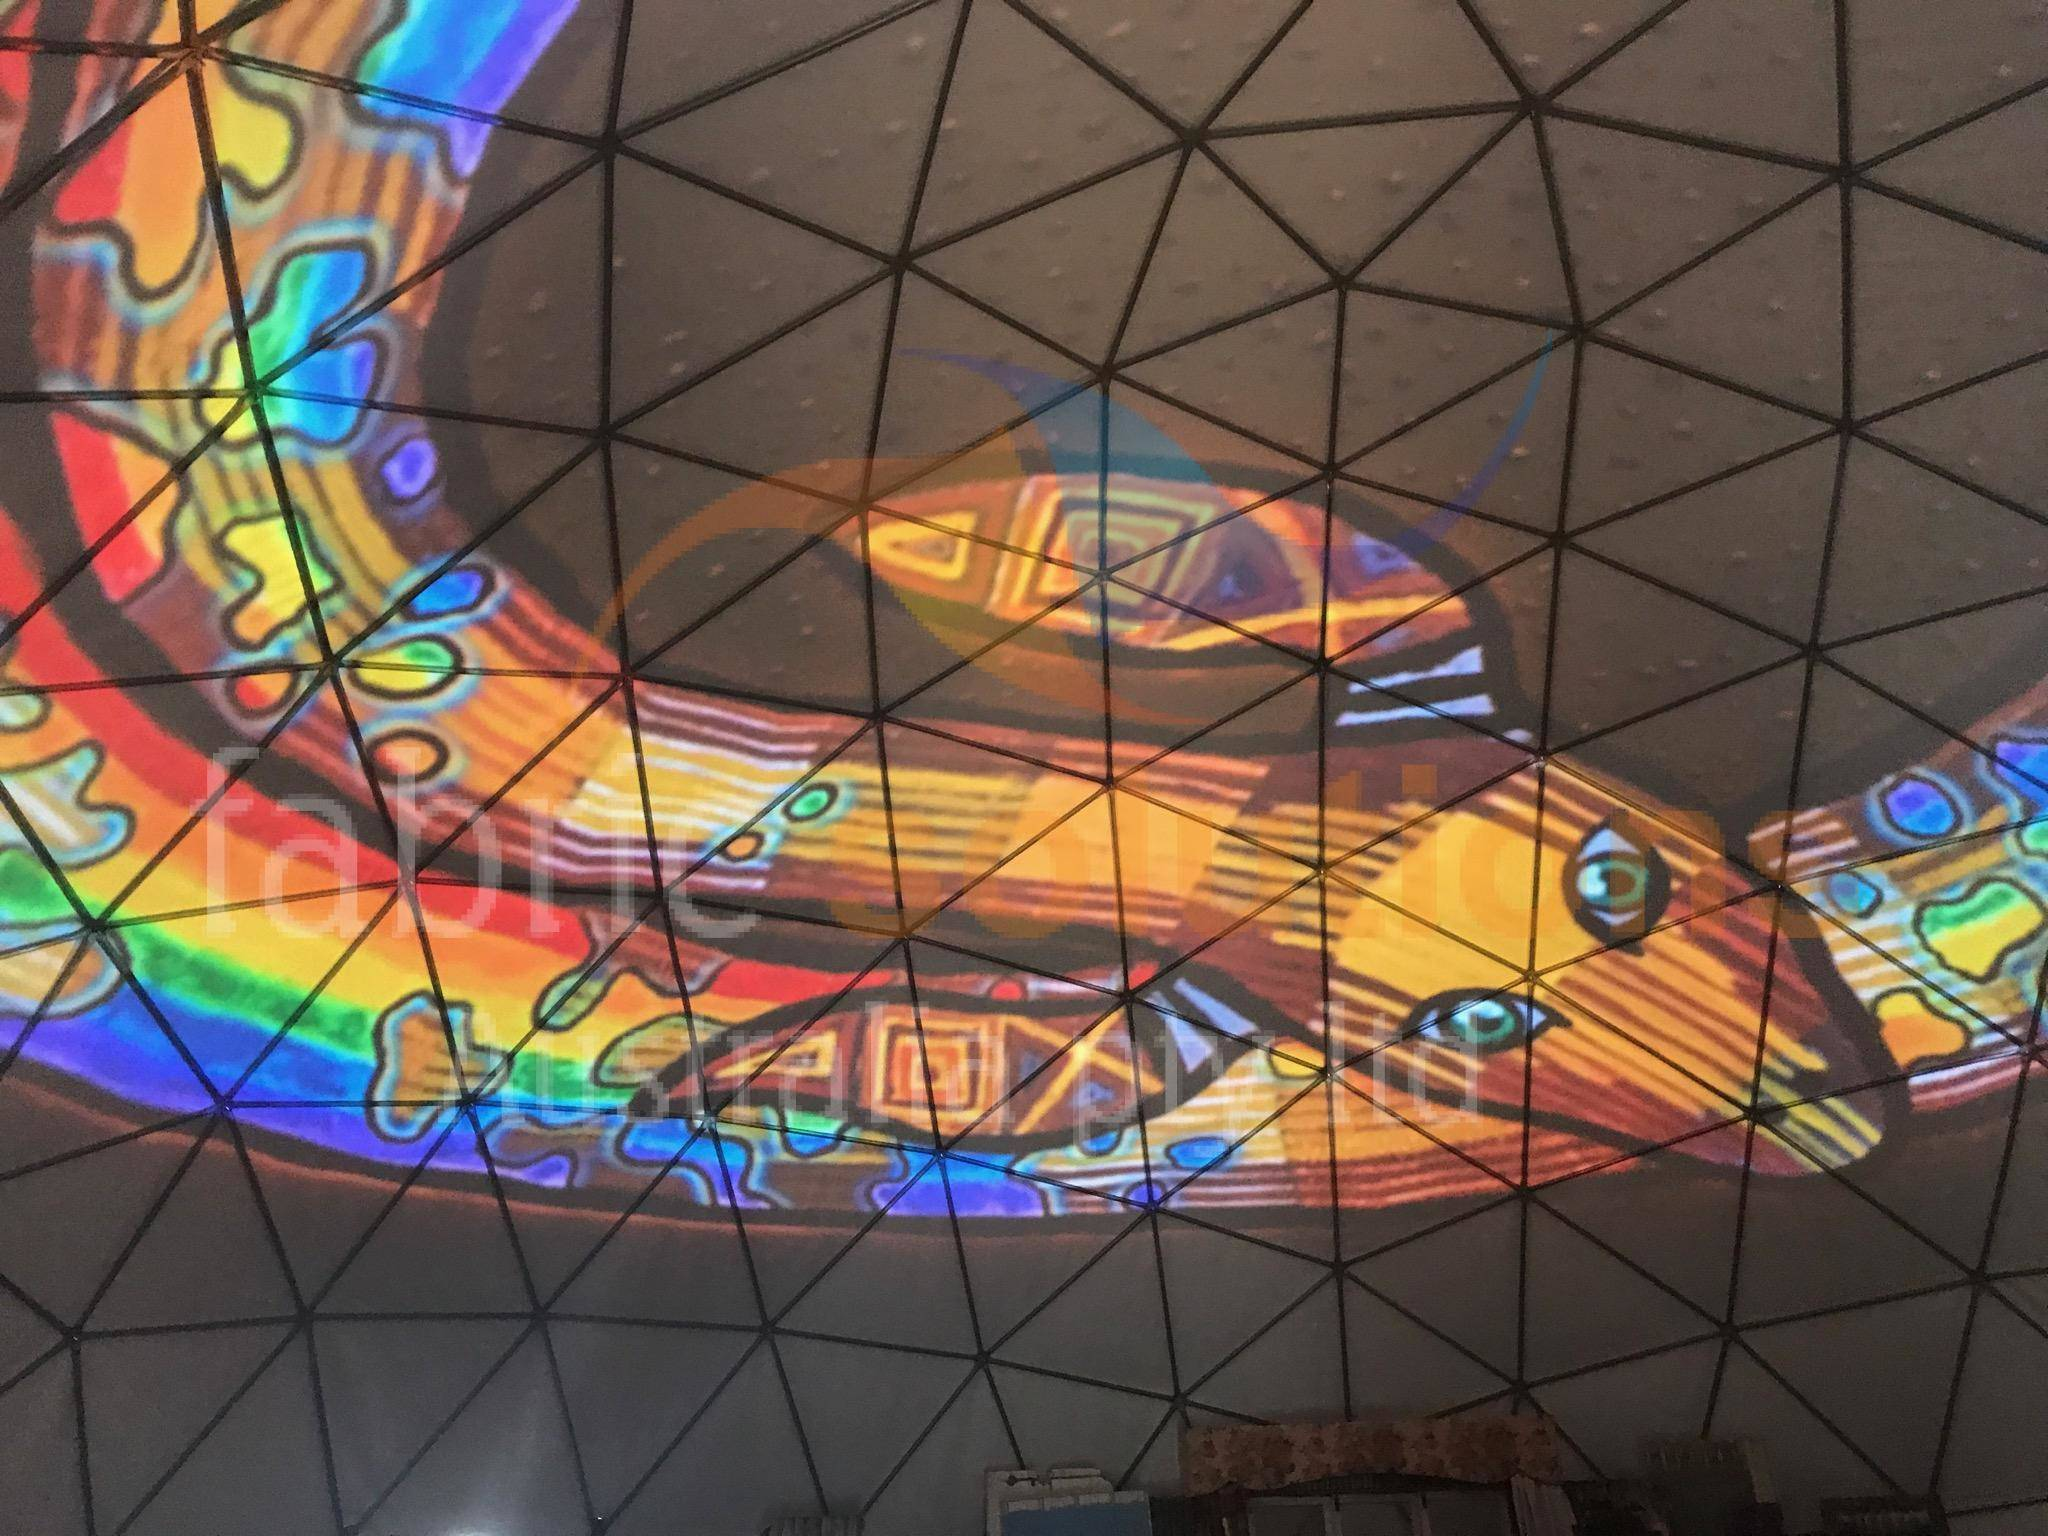 inside the geodesic dome for Brisbane Writers Festival, 2017